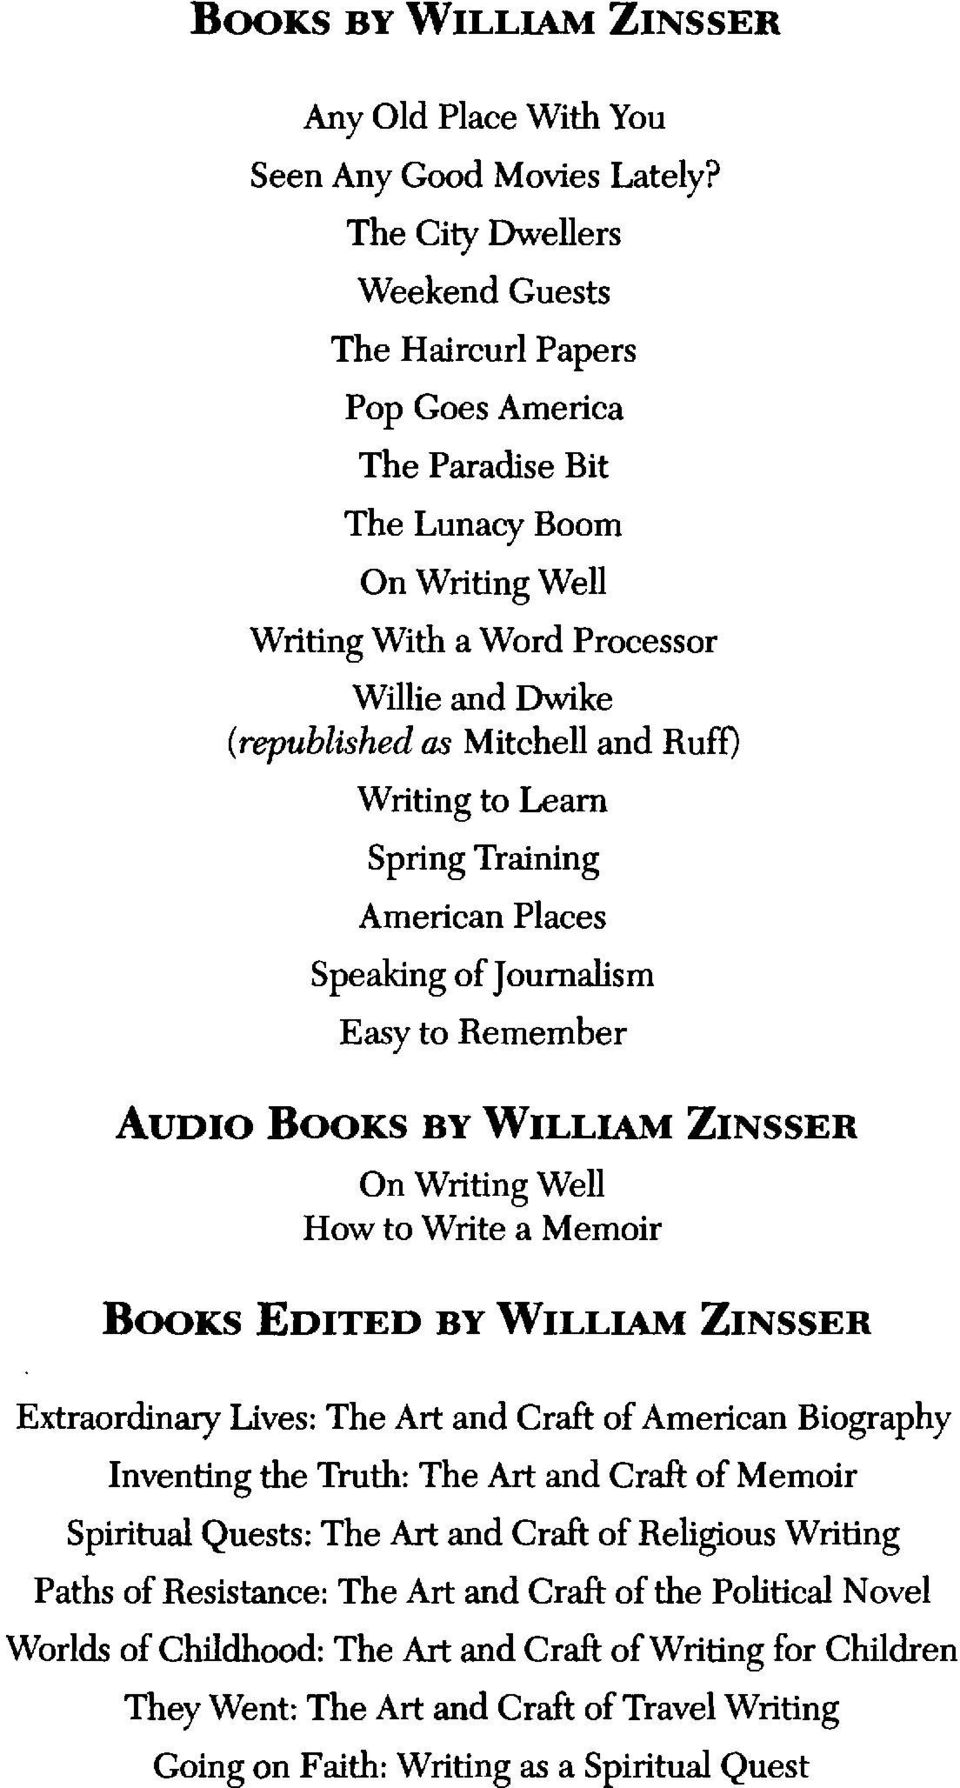 Ruff) Writing to Learn Spring Training American Places Speaking of Journalism Easy to Remember AUDIO BOOKS BY WILLIAM ZINSSER On Writing Well How to Write a Memoir BOOKS EDITED BY WILLIAM ZINSSER